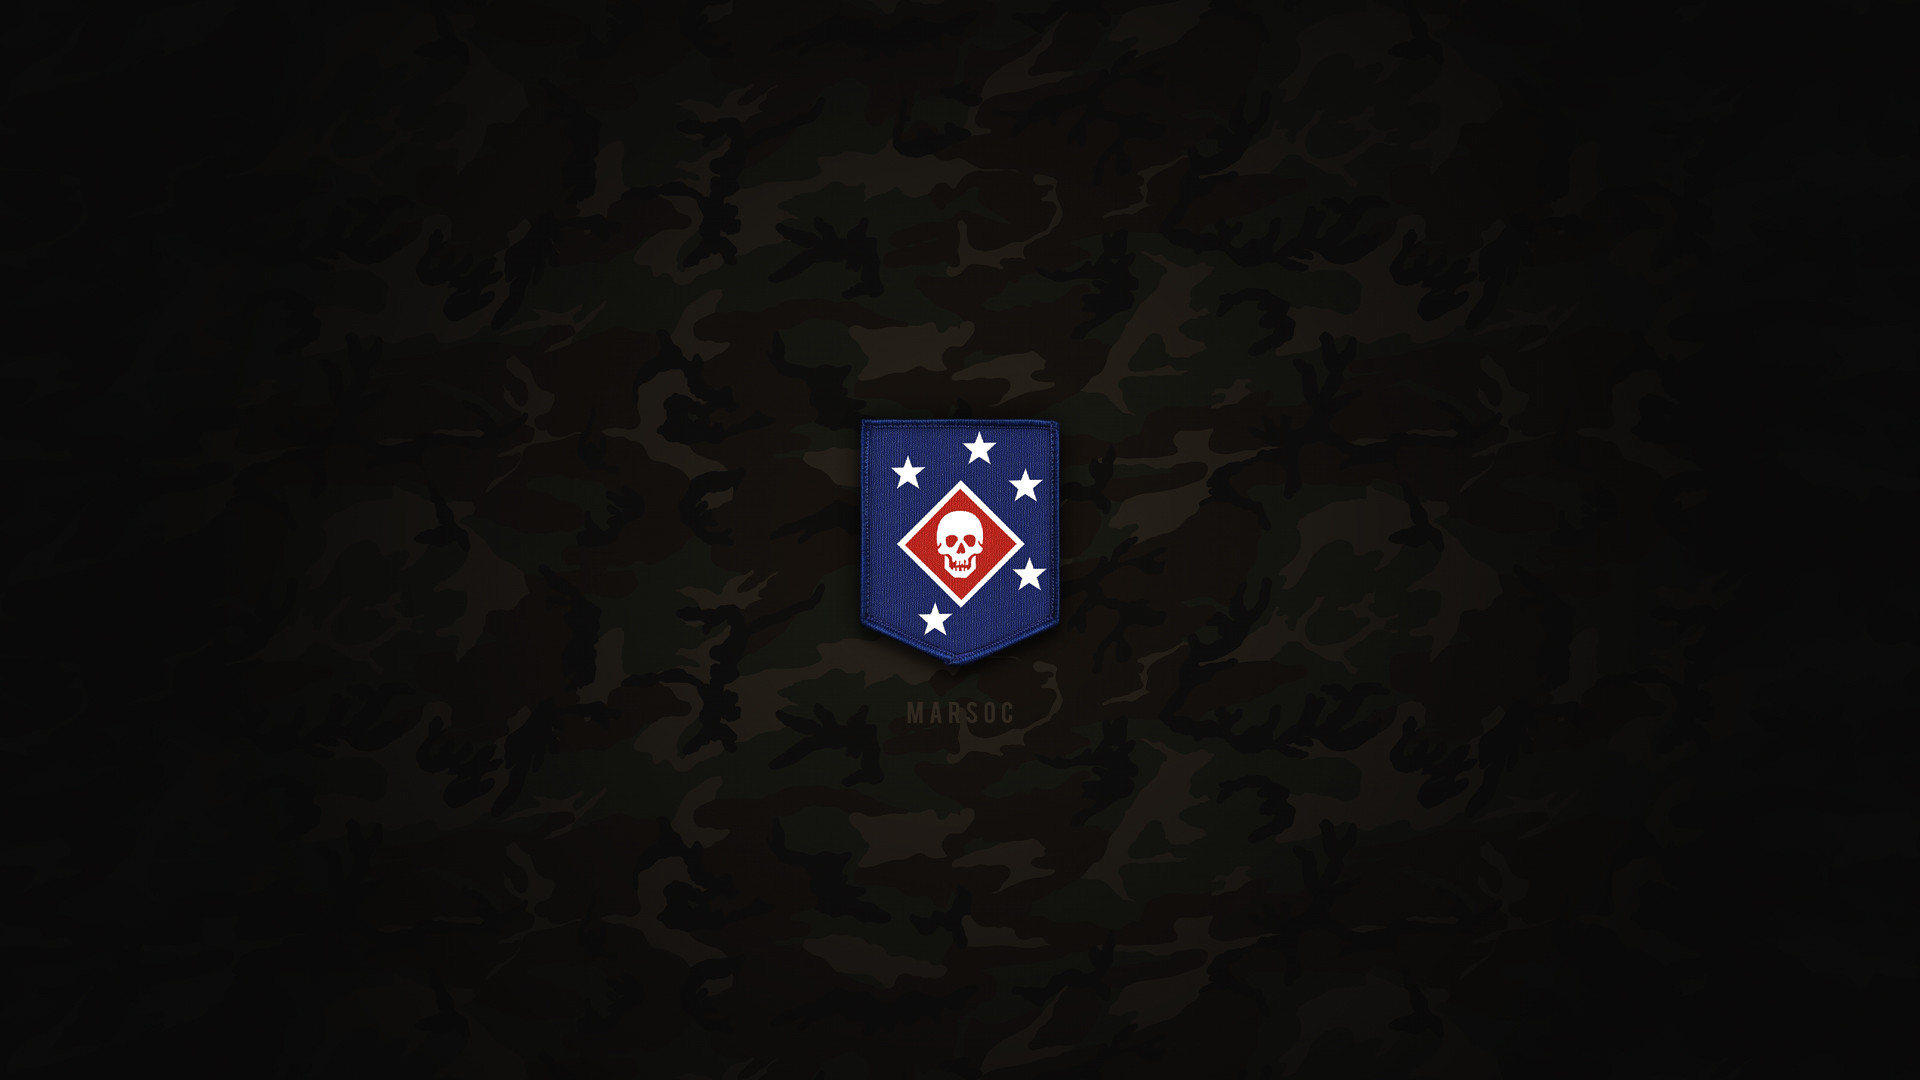 1920x1080 ... Marine Raider Patch | MARSOC | HD Wallpaper by ignitedkaos